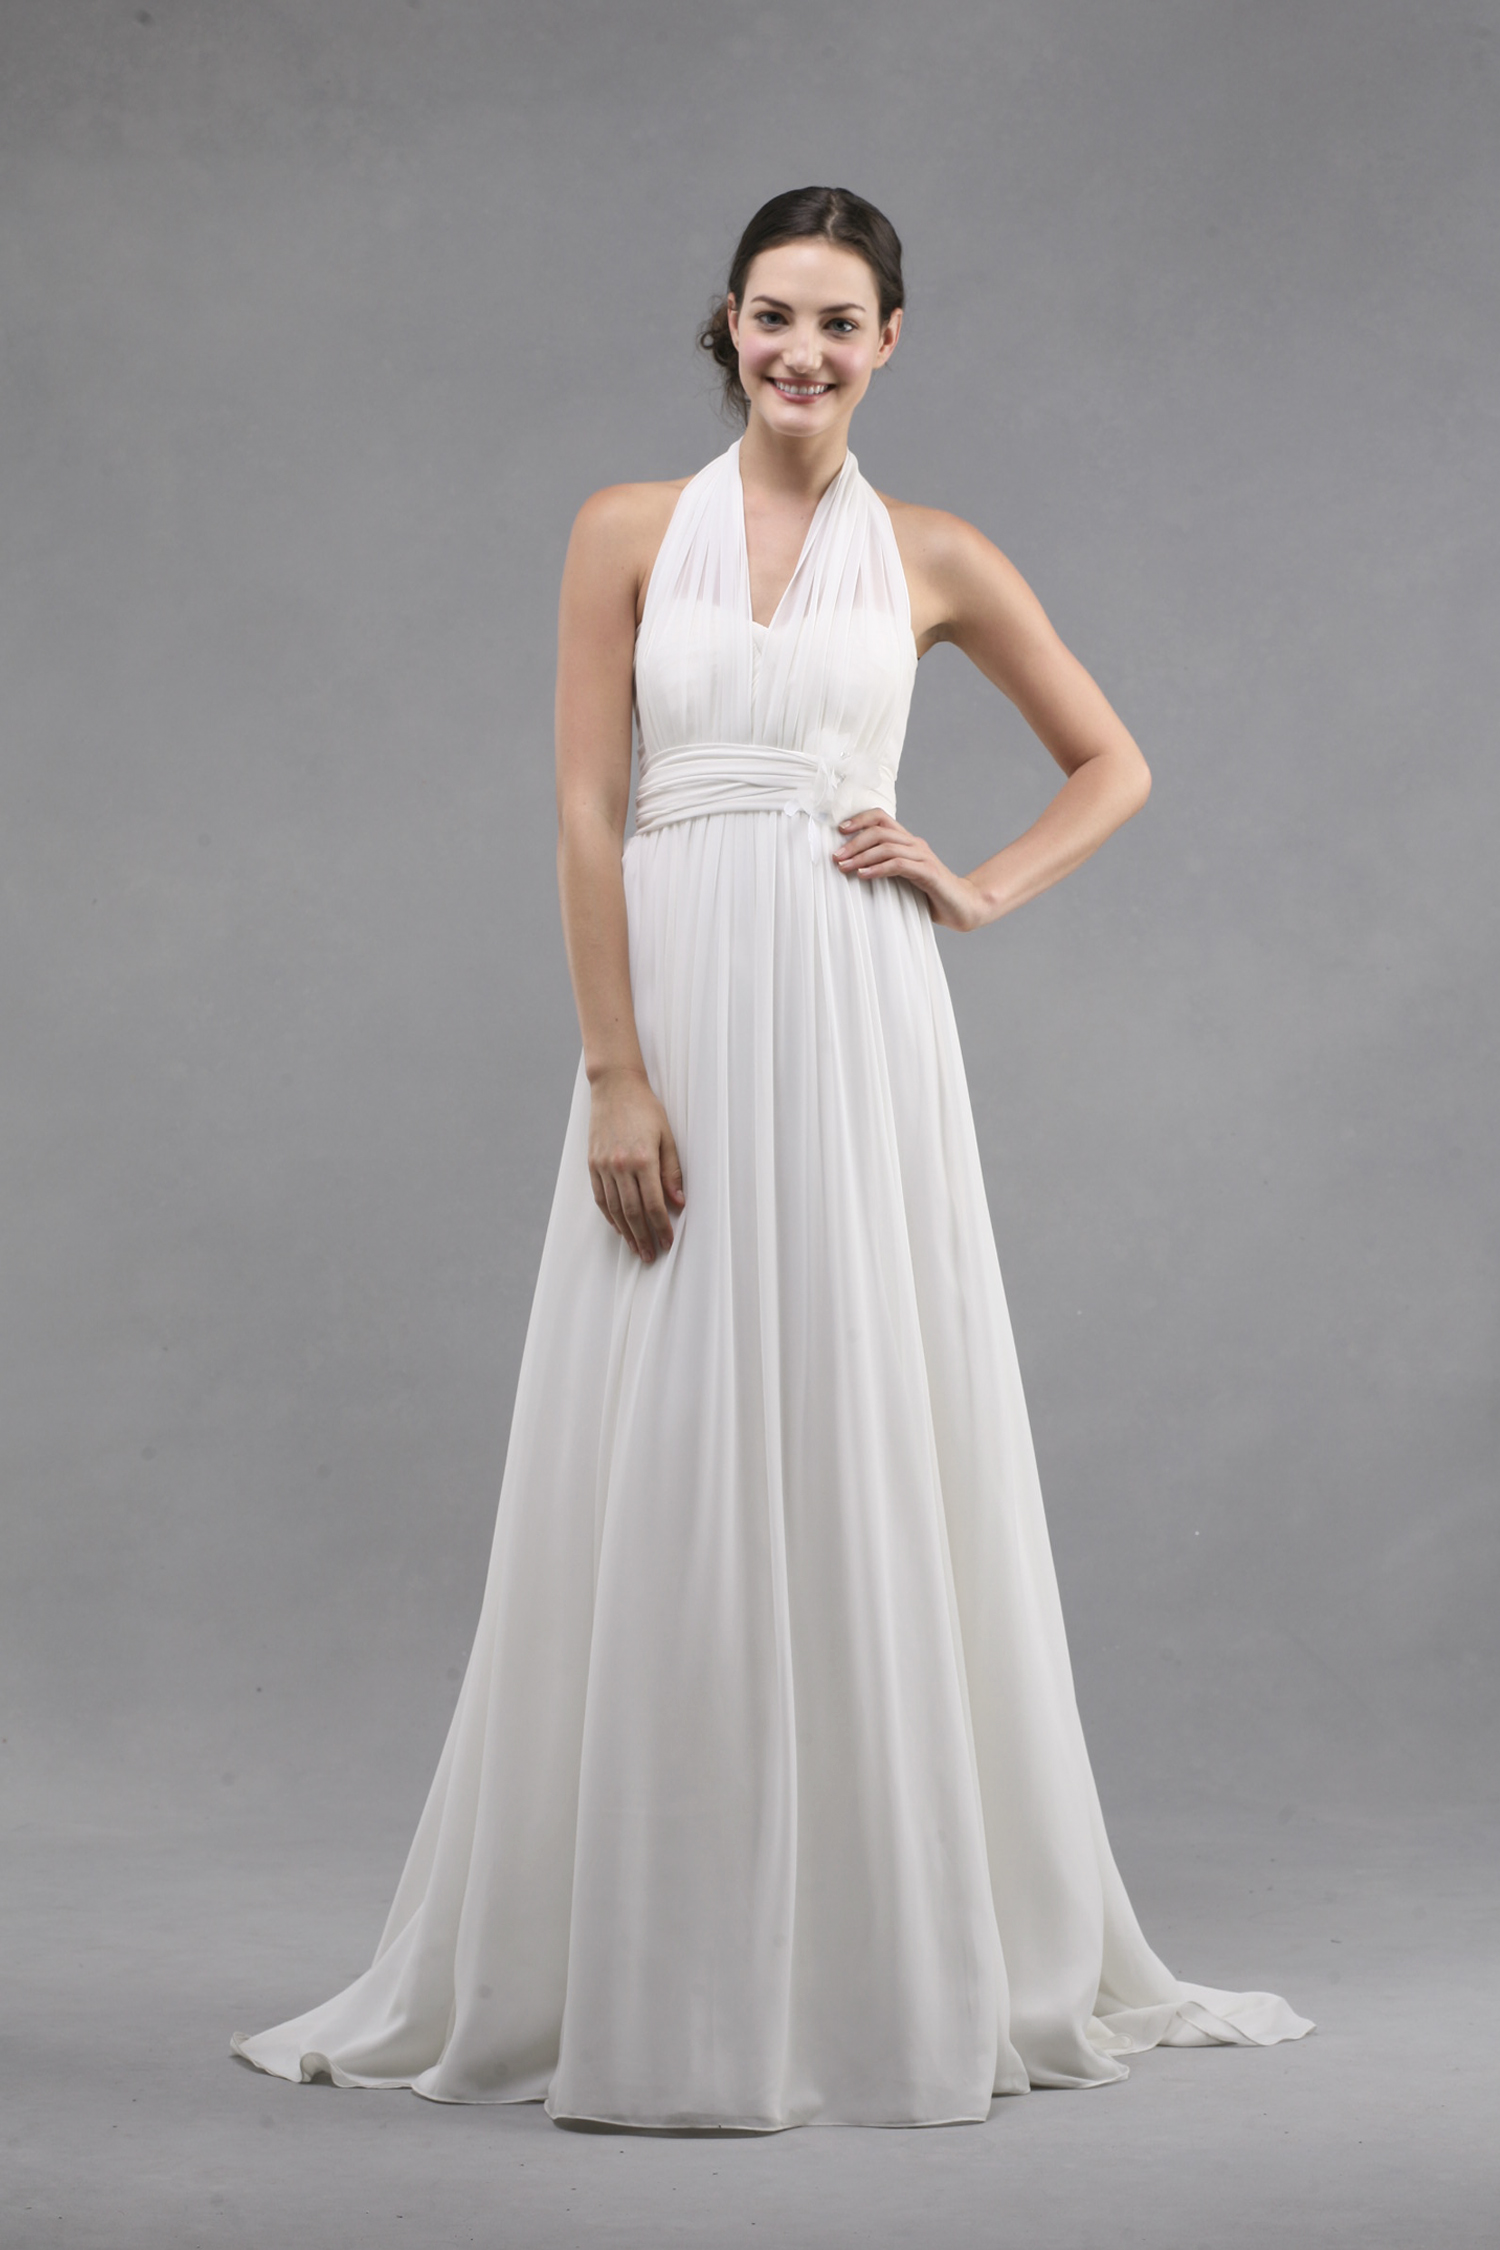 503 service unavailable for Spring summer wedding dresses